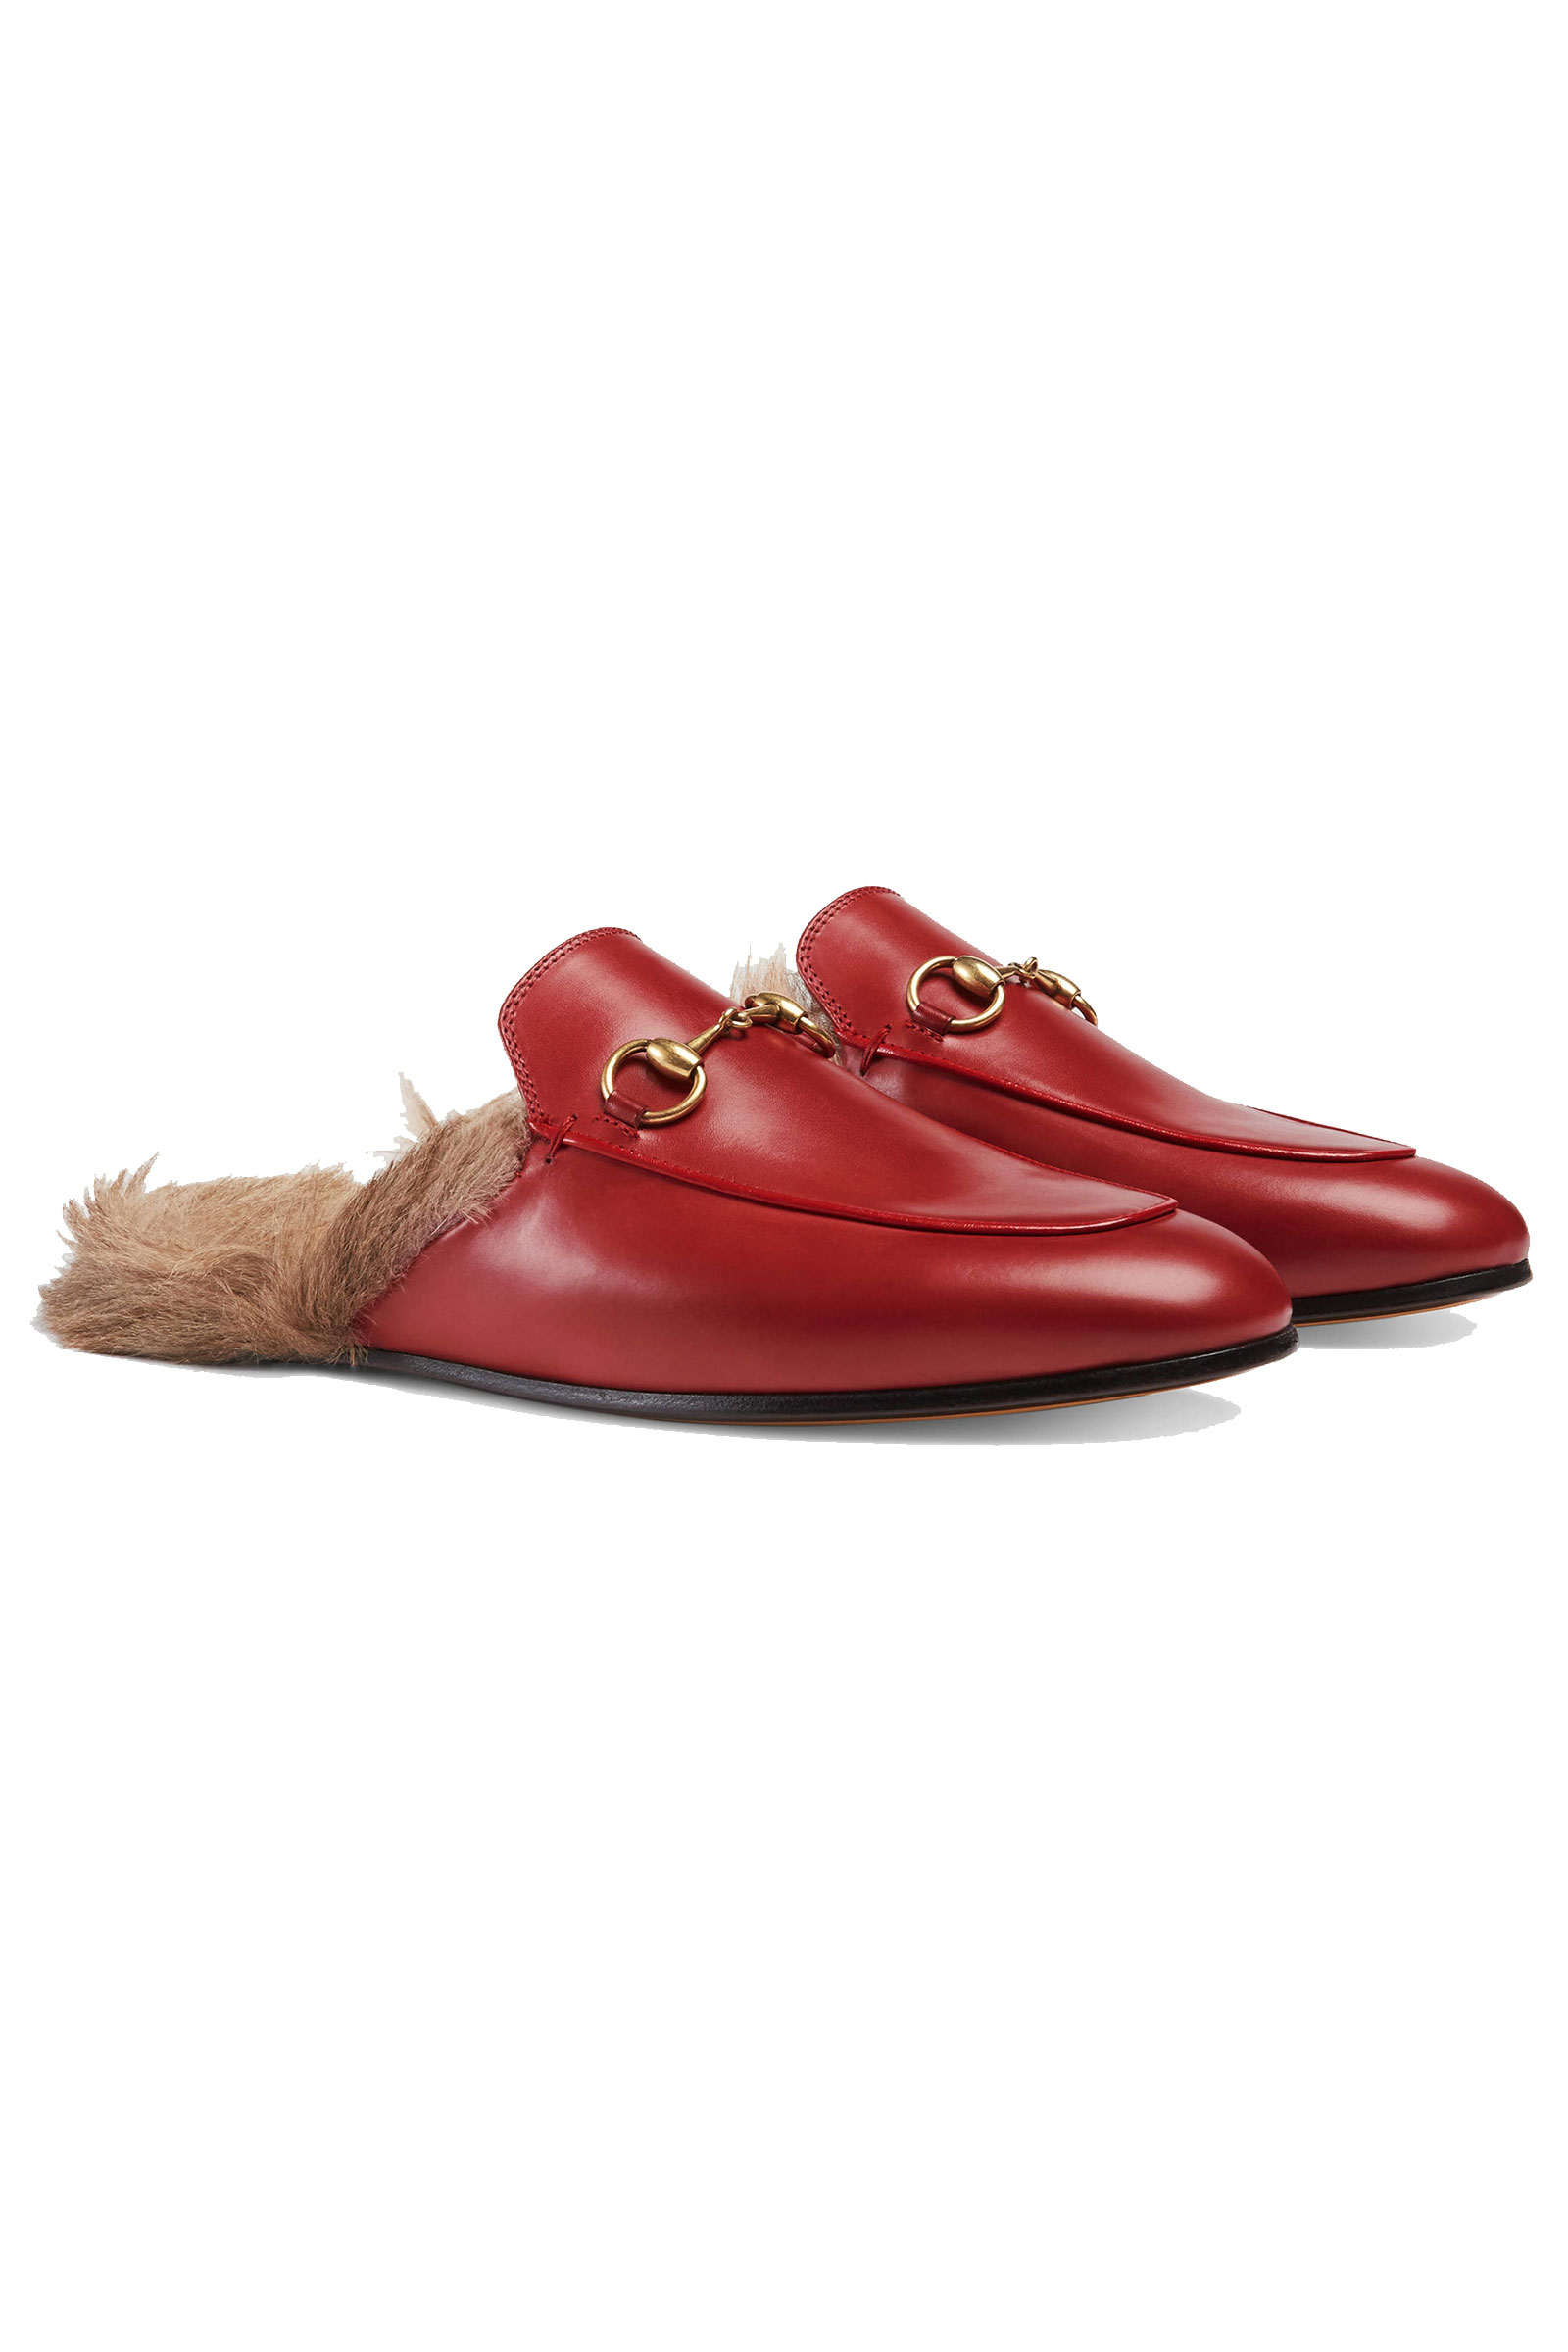 c57f319ae685 Buy Gucci Princetown Fur Lined Leather Slippers Online